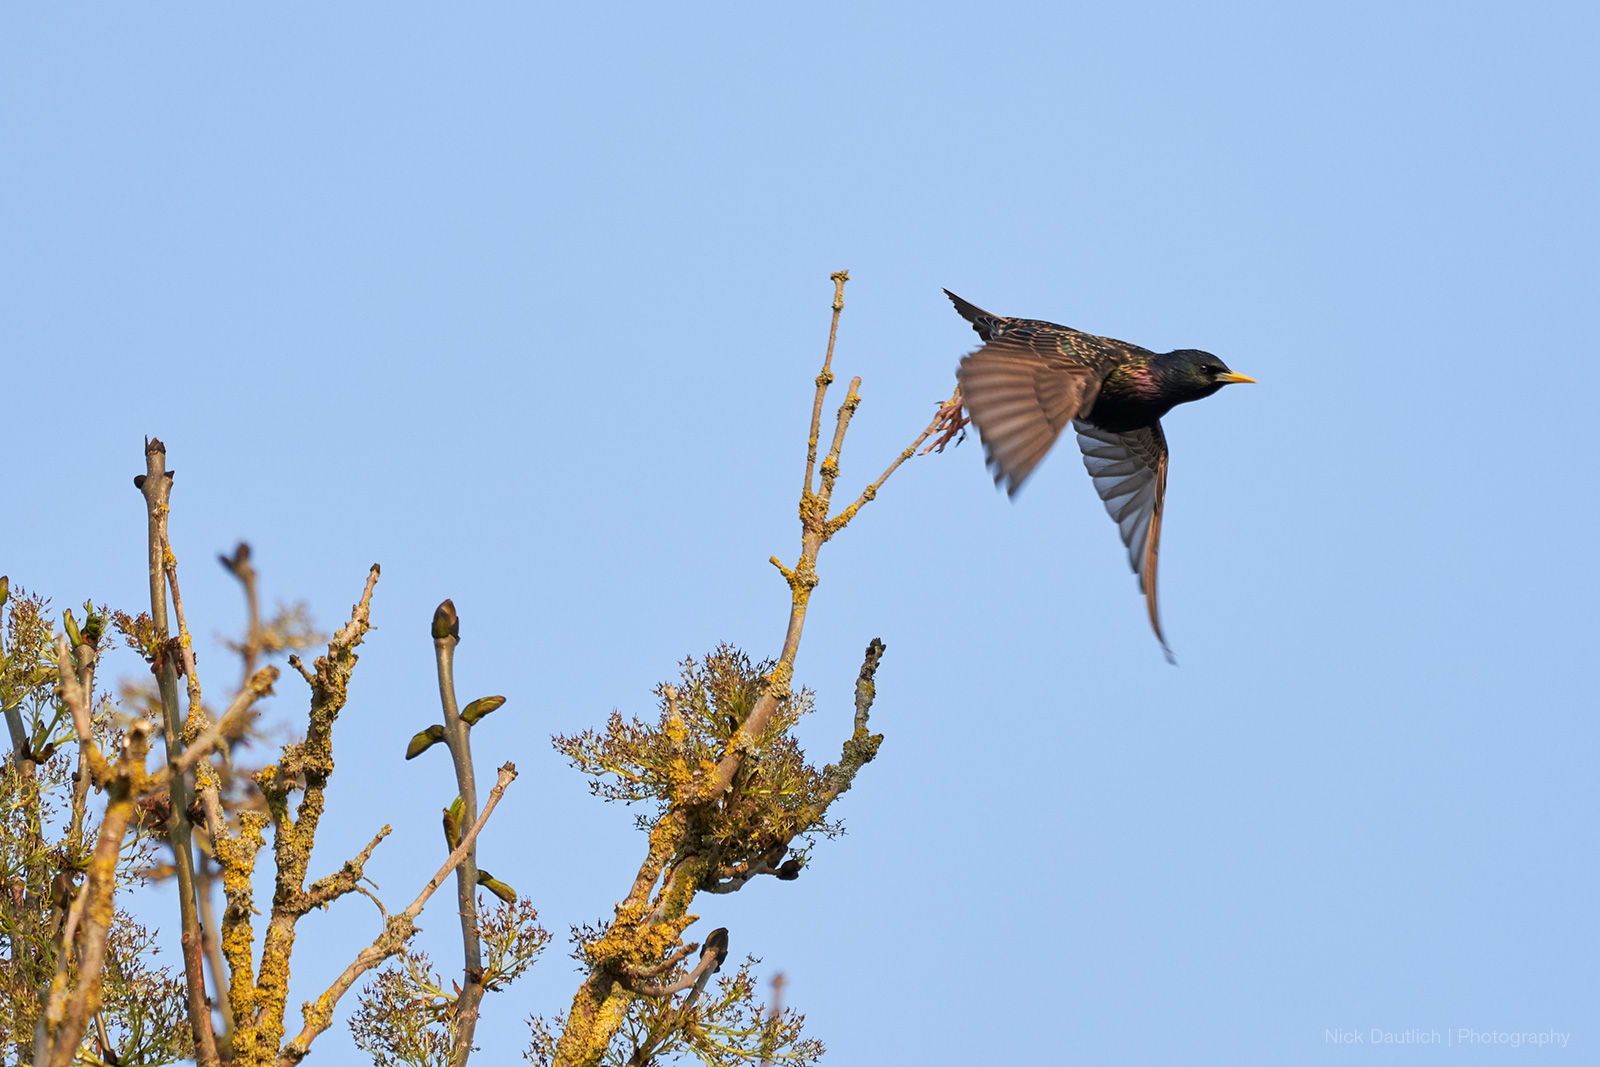 Starling take-off